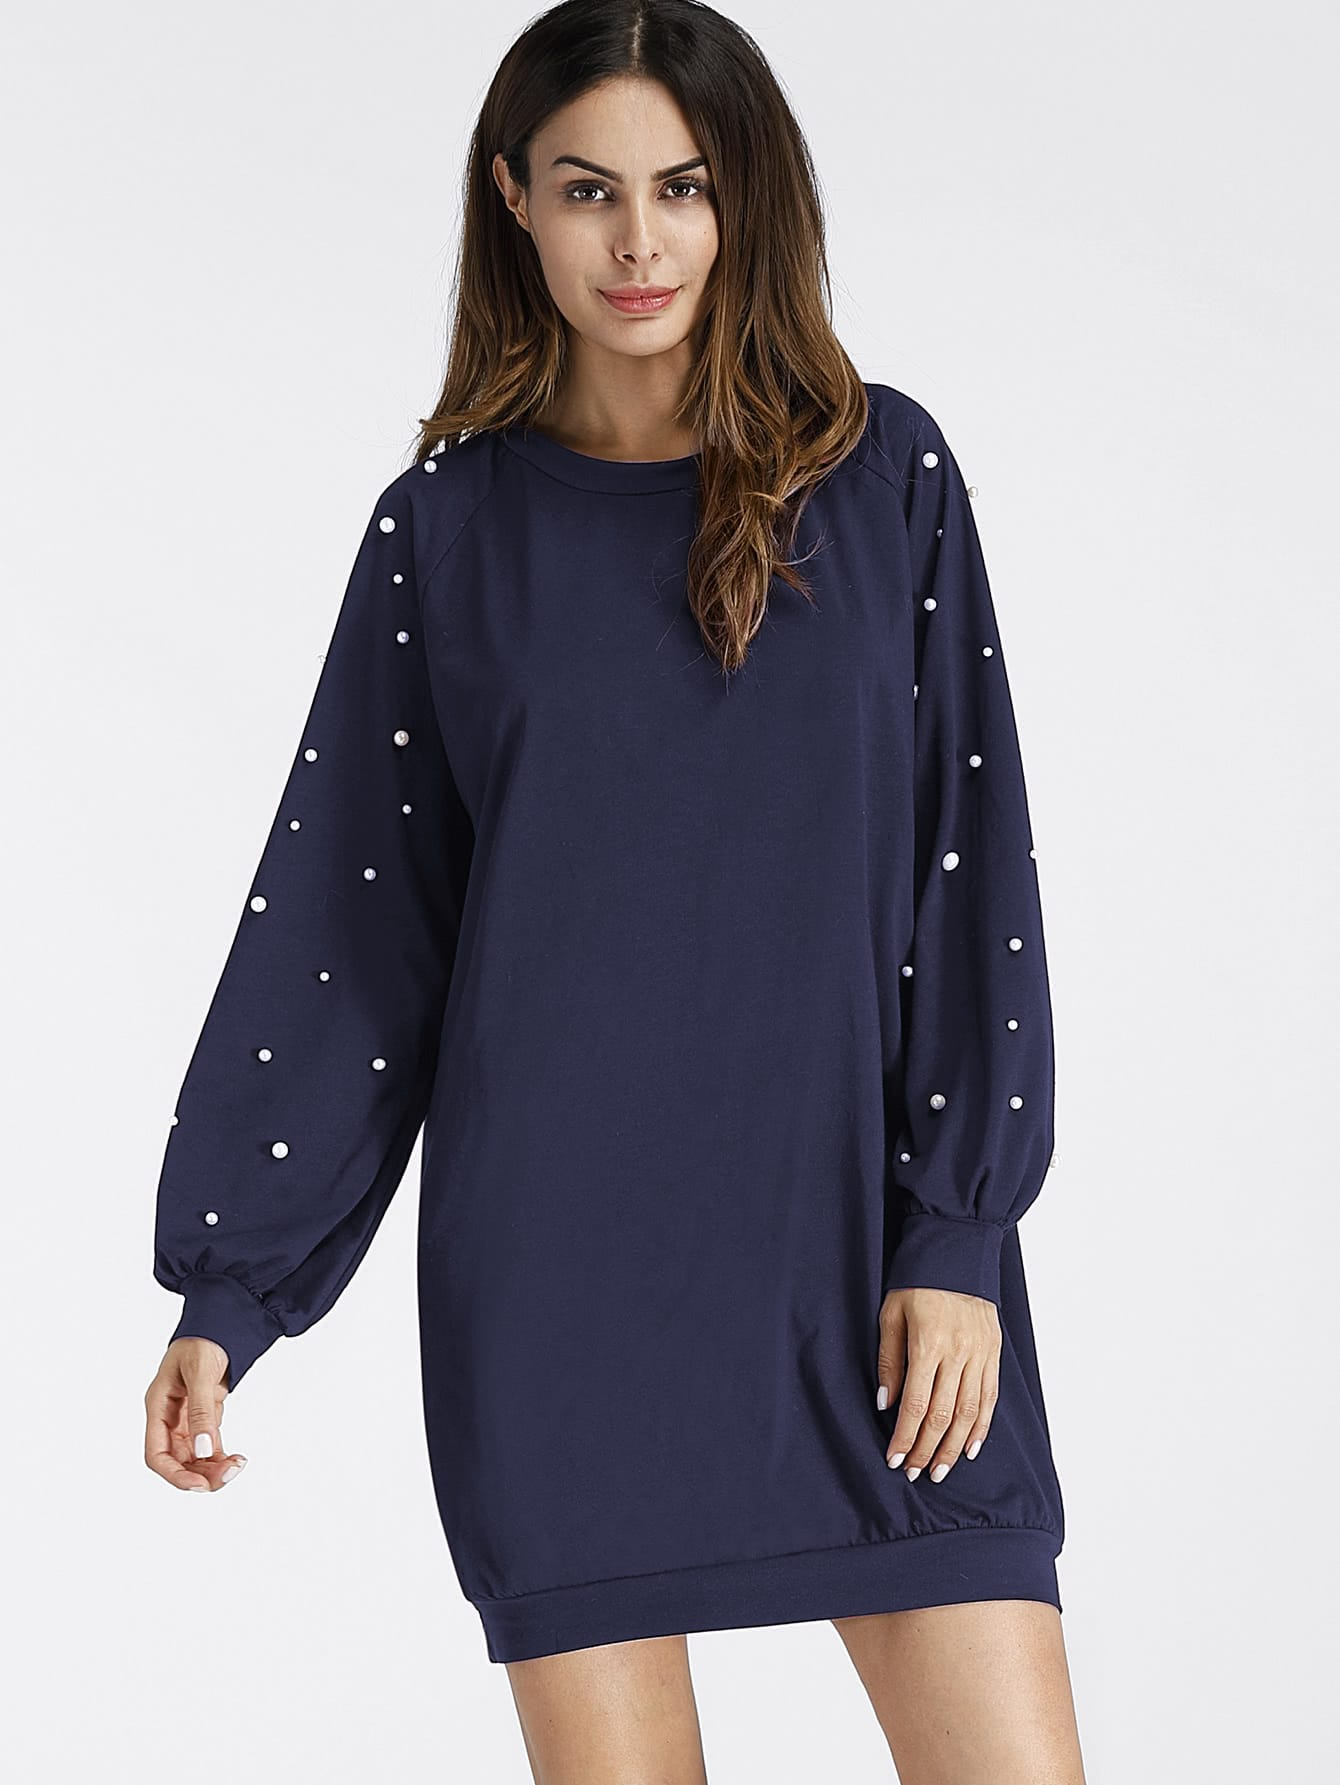 купить Pearl Beading Balloon Sleeve Sweatshirt Dress недорого